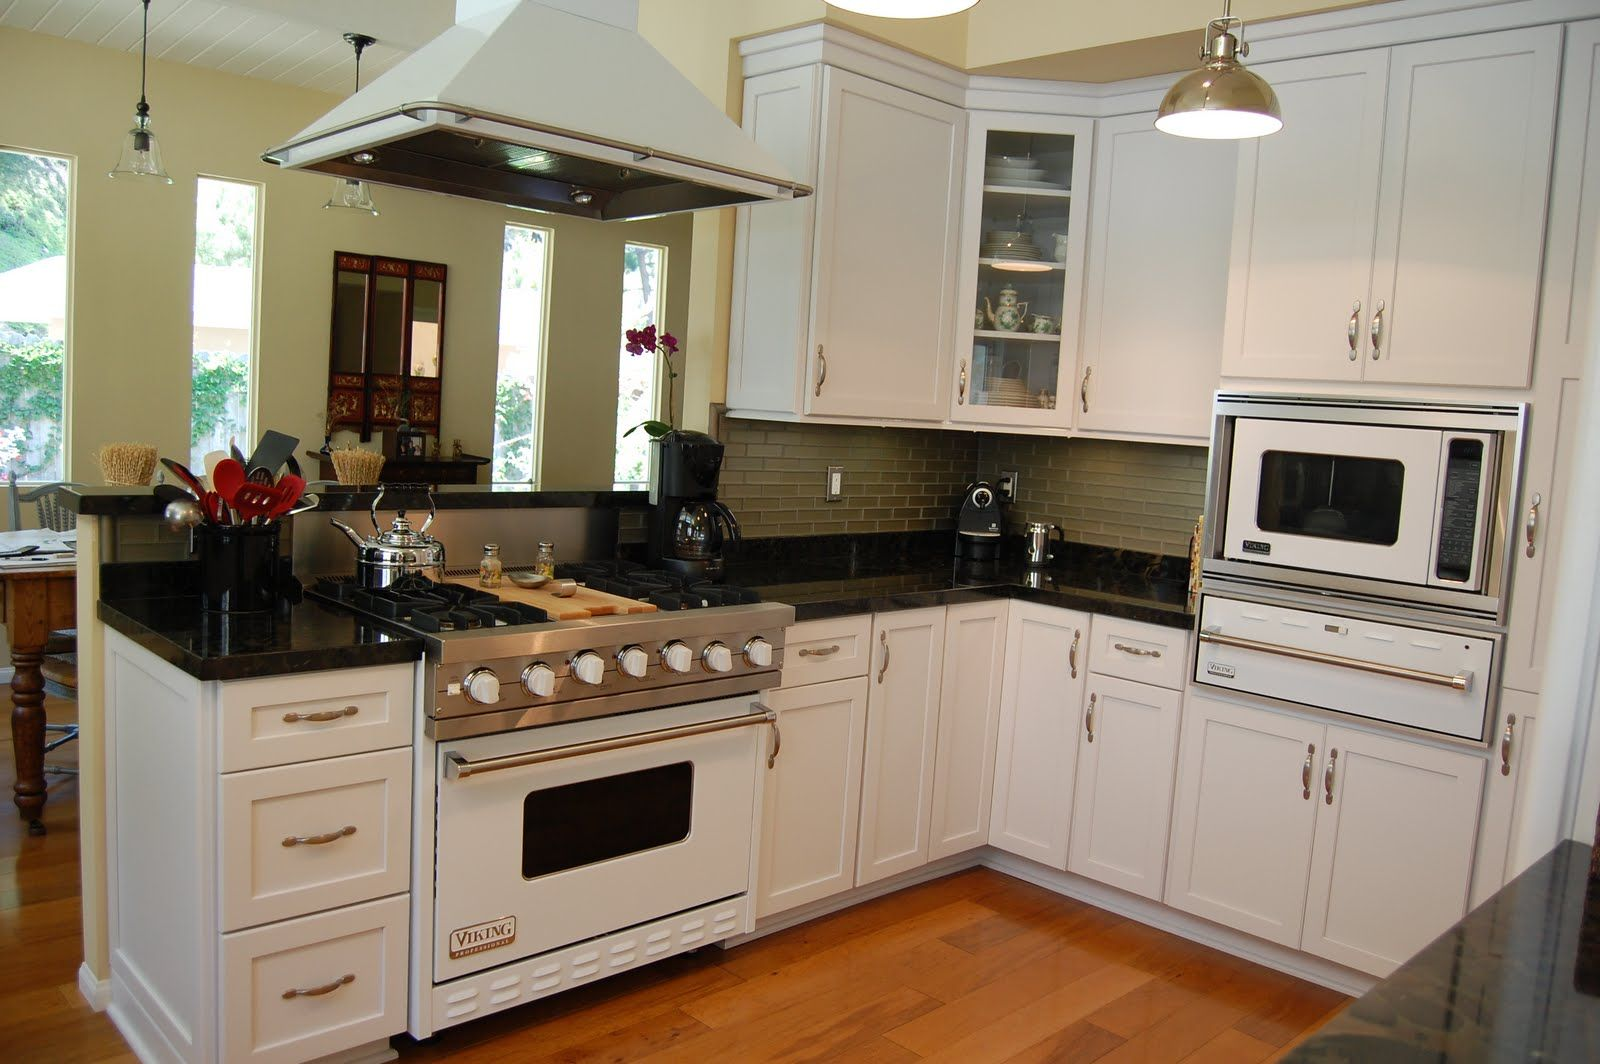 Remodeling the ranch style home counter space awkward for Kitchen gallery ideas